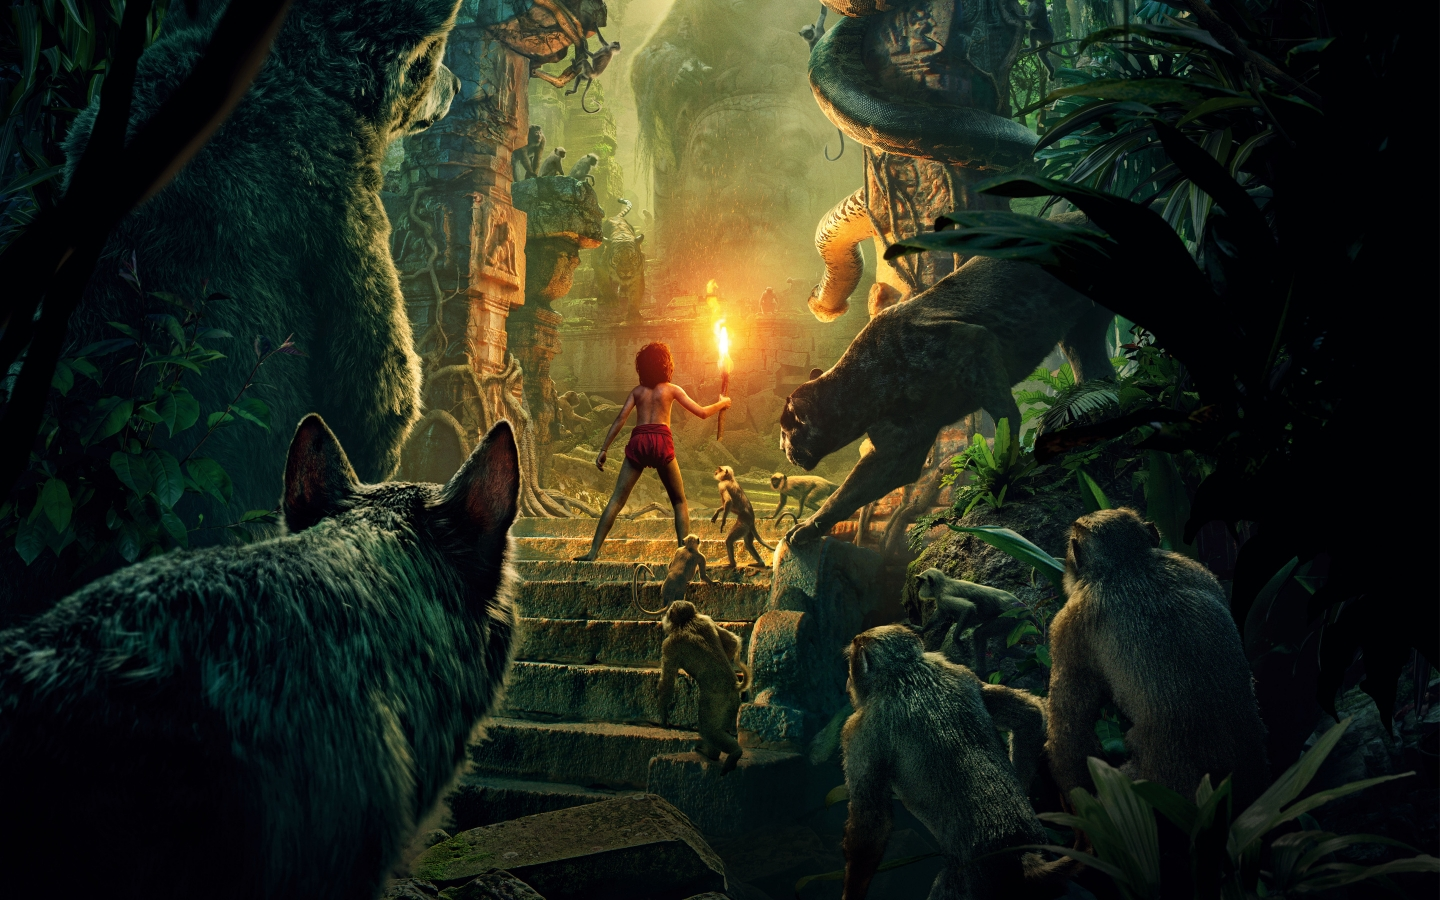 The Jungle Book 2016 for 1440 x 900 widescreen resolution